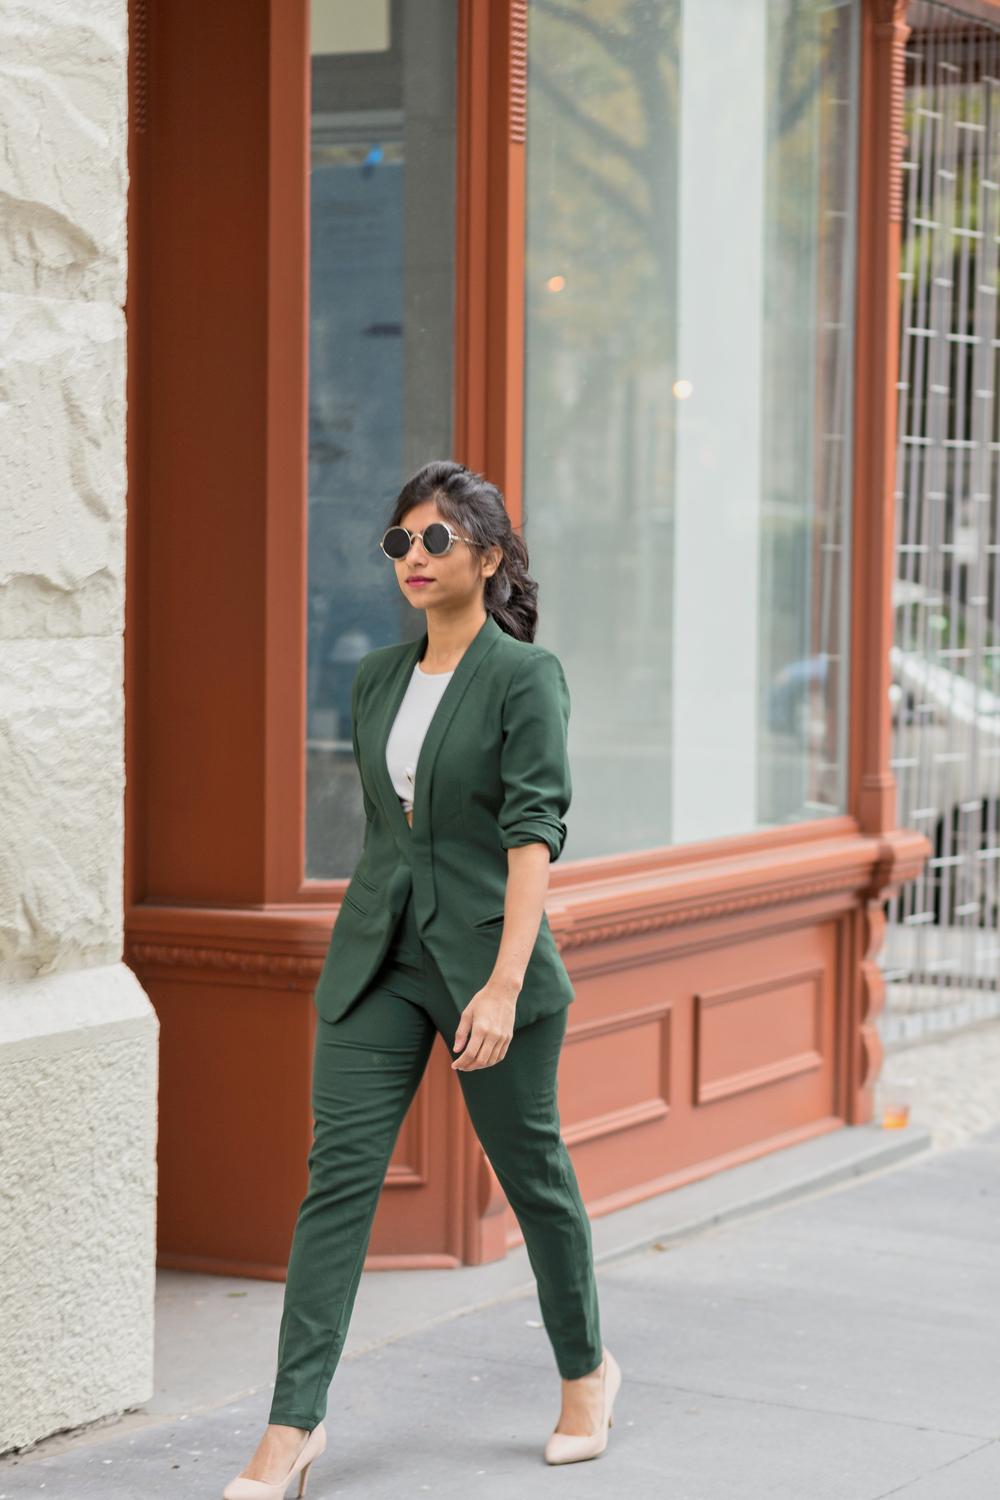 Olive Green Suit 4_lzn.jpg